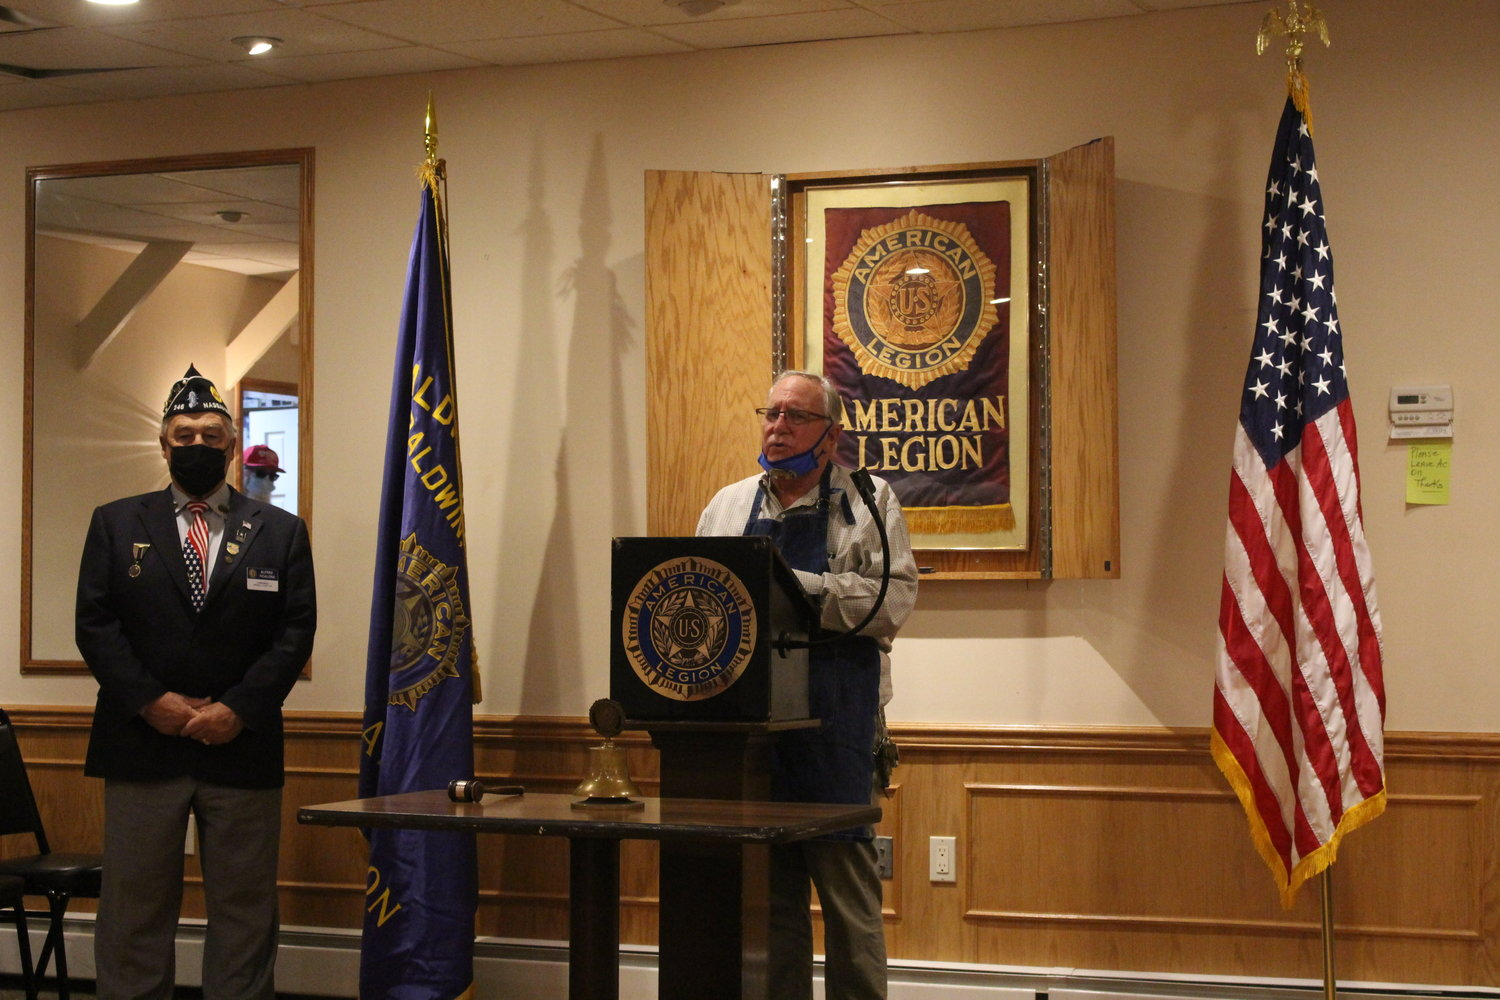 Adj. Jack Wachter, above, spoke at the ceremony, which took place on Nov. 11 at the Baldwin American Legion Post 246.